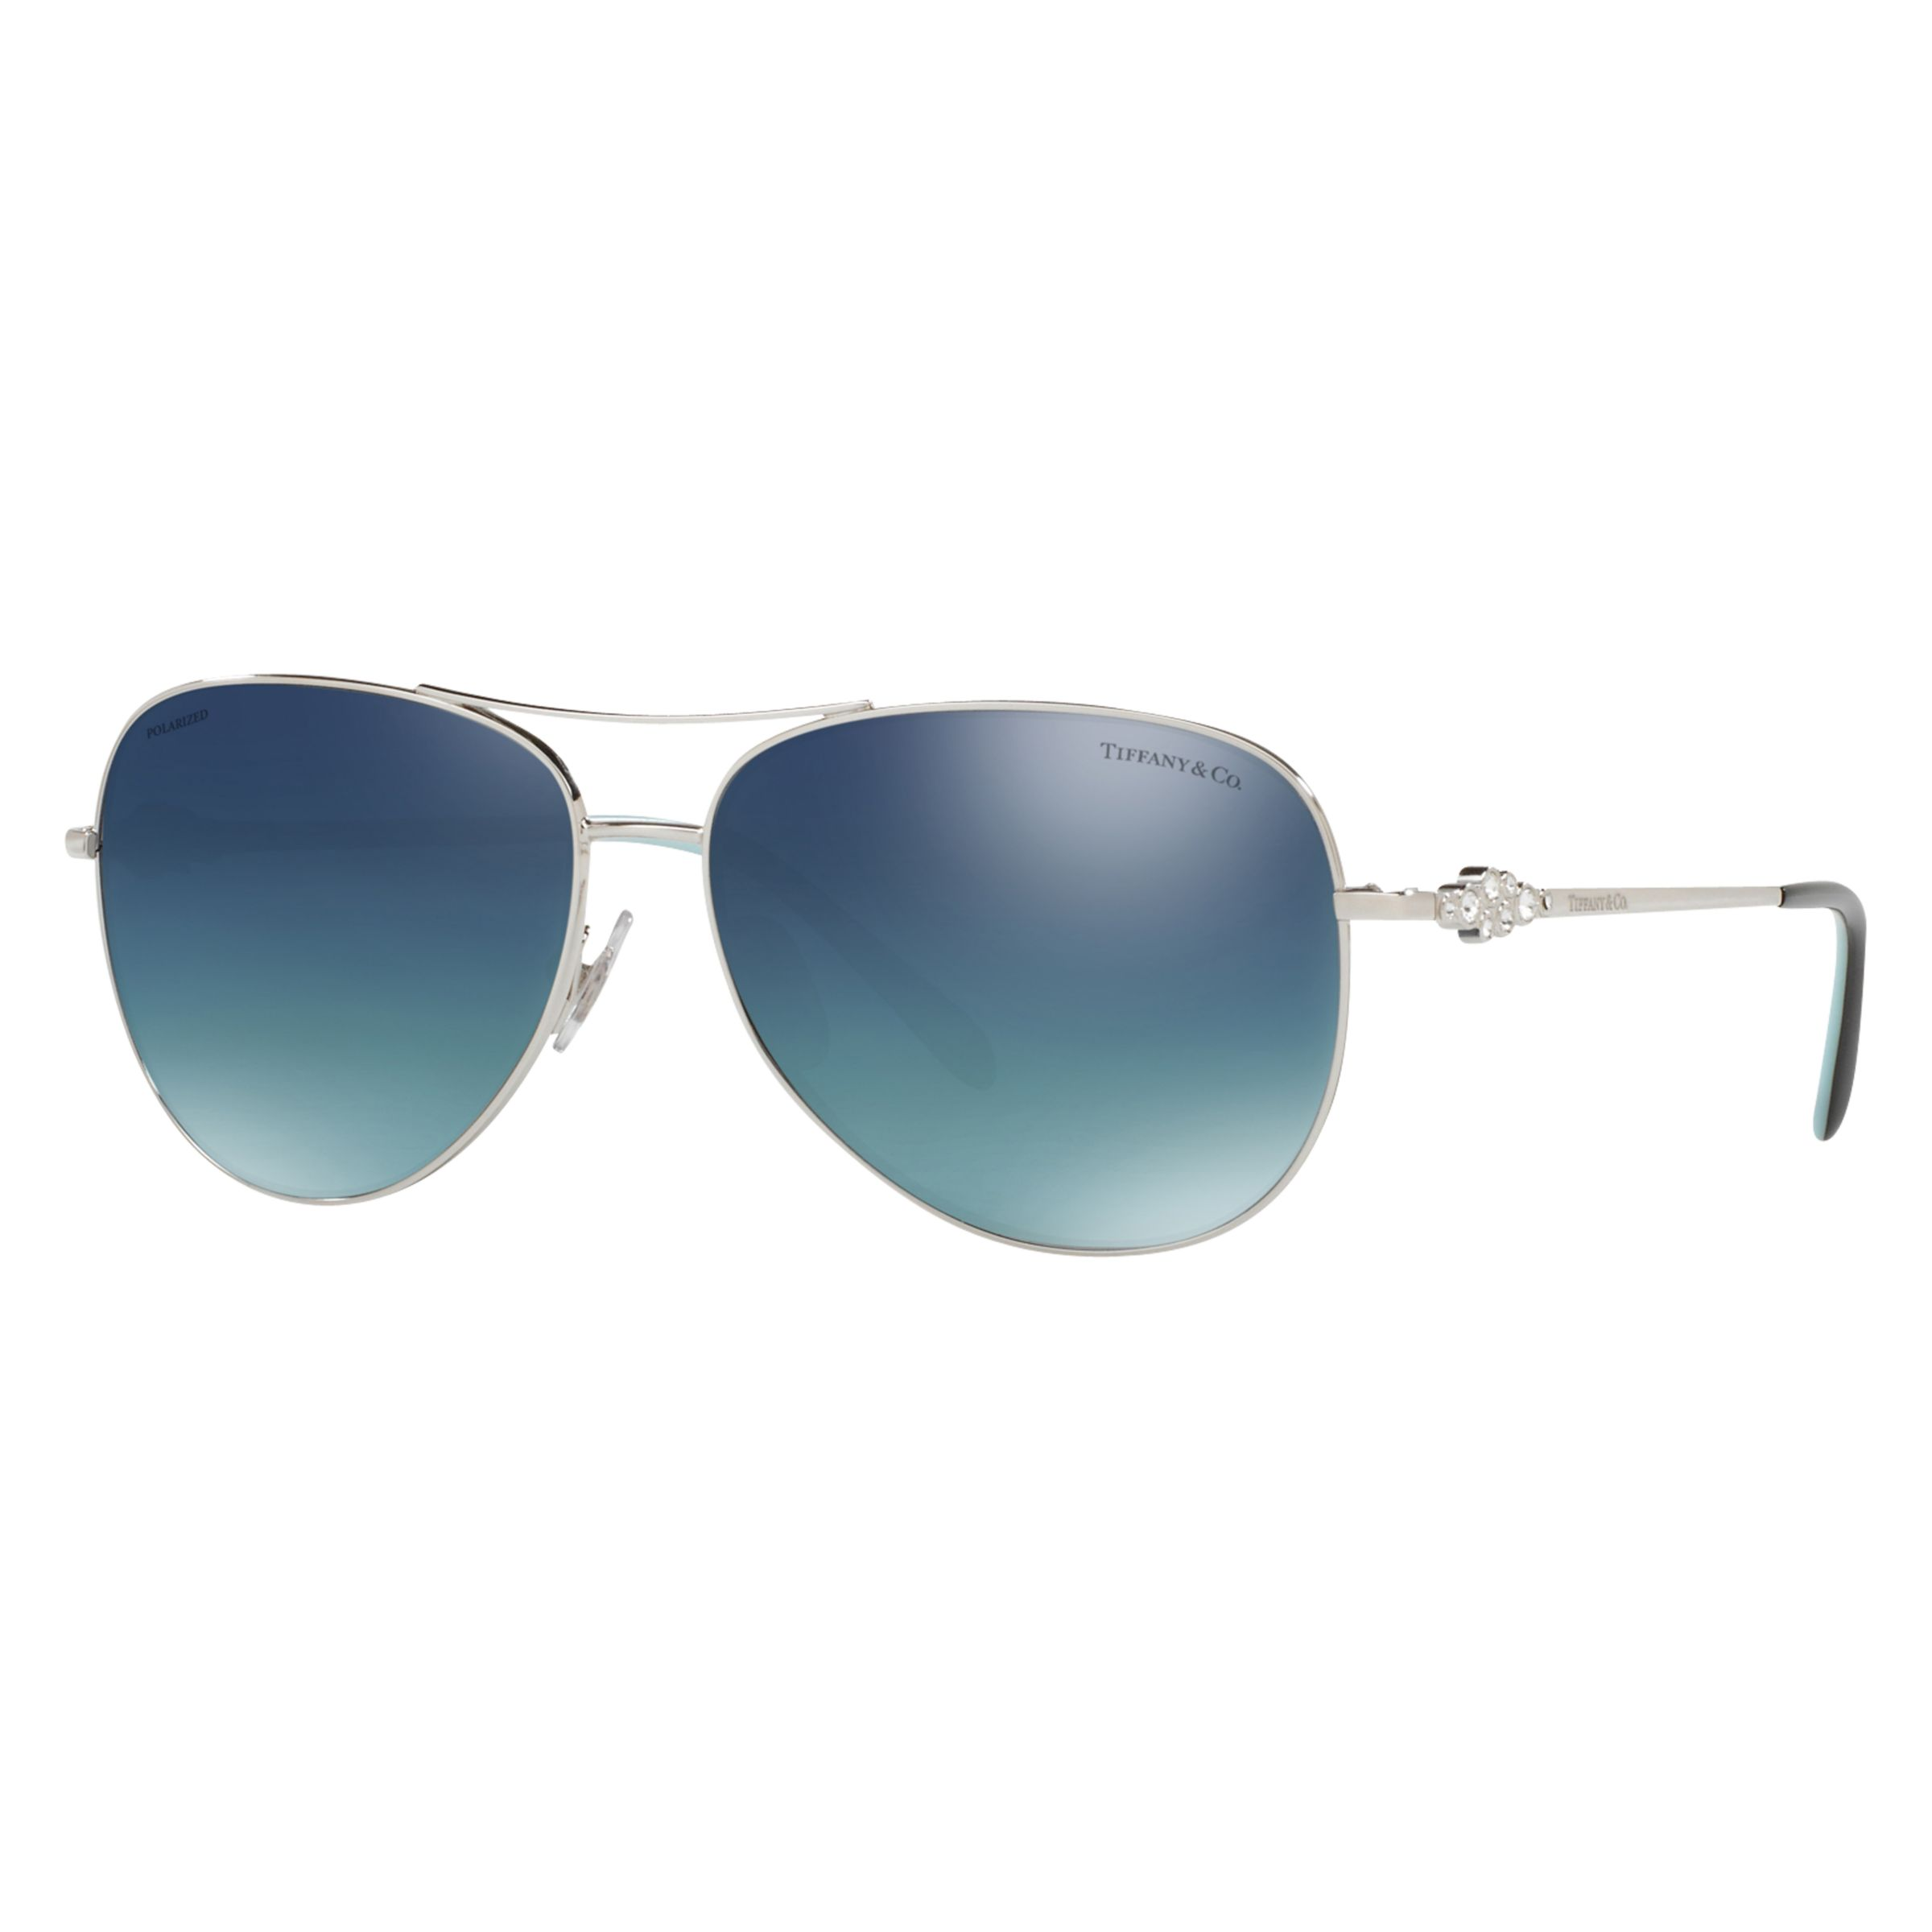 b35c0c4486b Tiffany   Co TF3052B Polarised Aviator Sunglasses